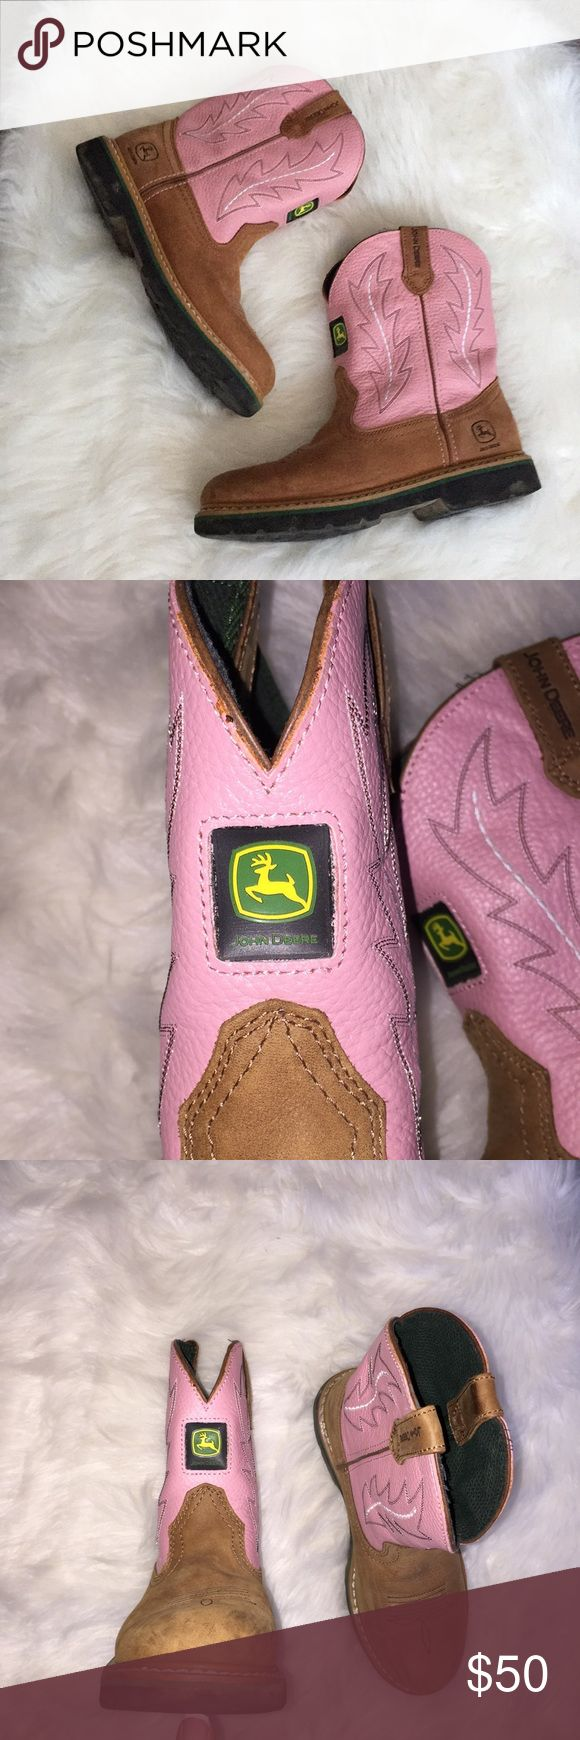 🌸Pink John Deere boots See closet for matching fleece hoodie! Bundle both for $60,firm.) These pink John Deere boots were bought at Tractor Supply Company. They are a youth size 4.5M. True to size. Minimal wear, plenty of tread left on the soles. Quality and long lasting leather and stitching . Pull on style . No lowball offers considered . (These are the equivalent of a 6.5 ladies.) FINAL price drop. John Deere Shoes Boots